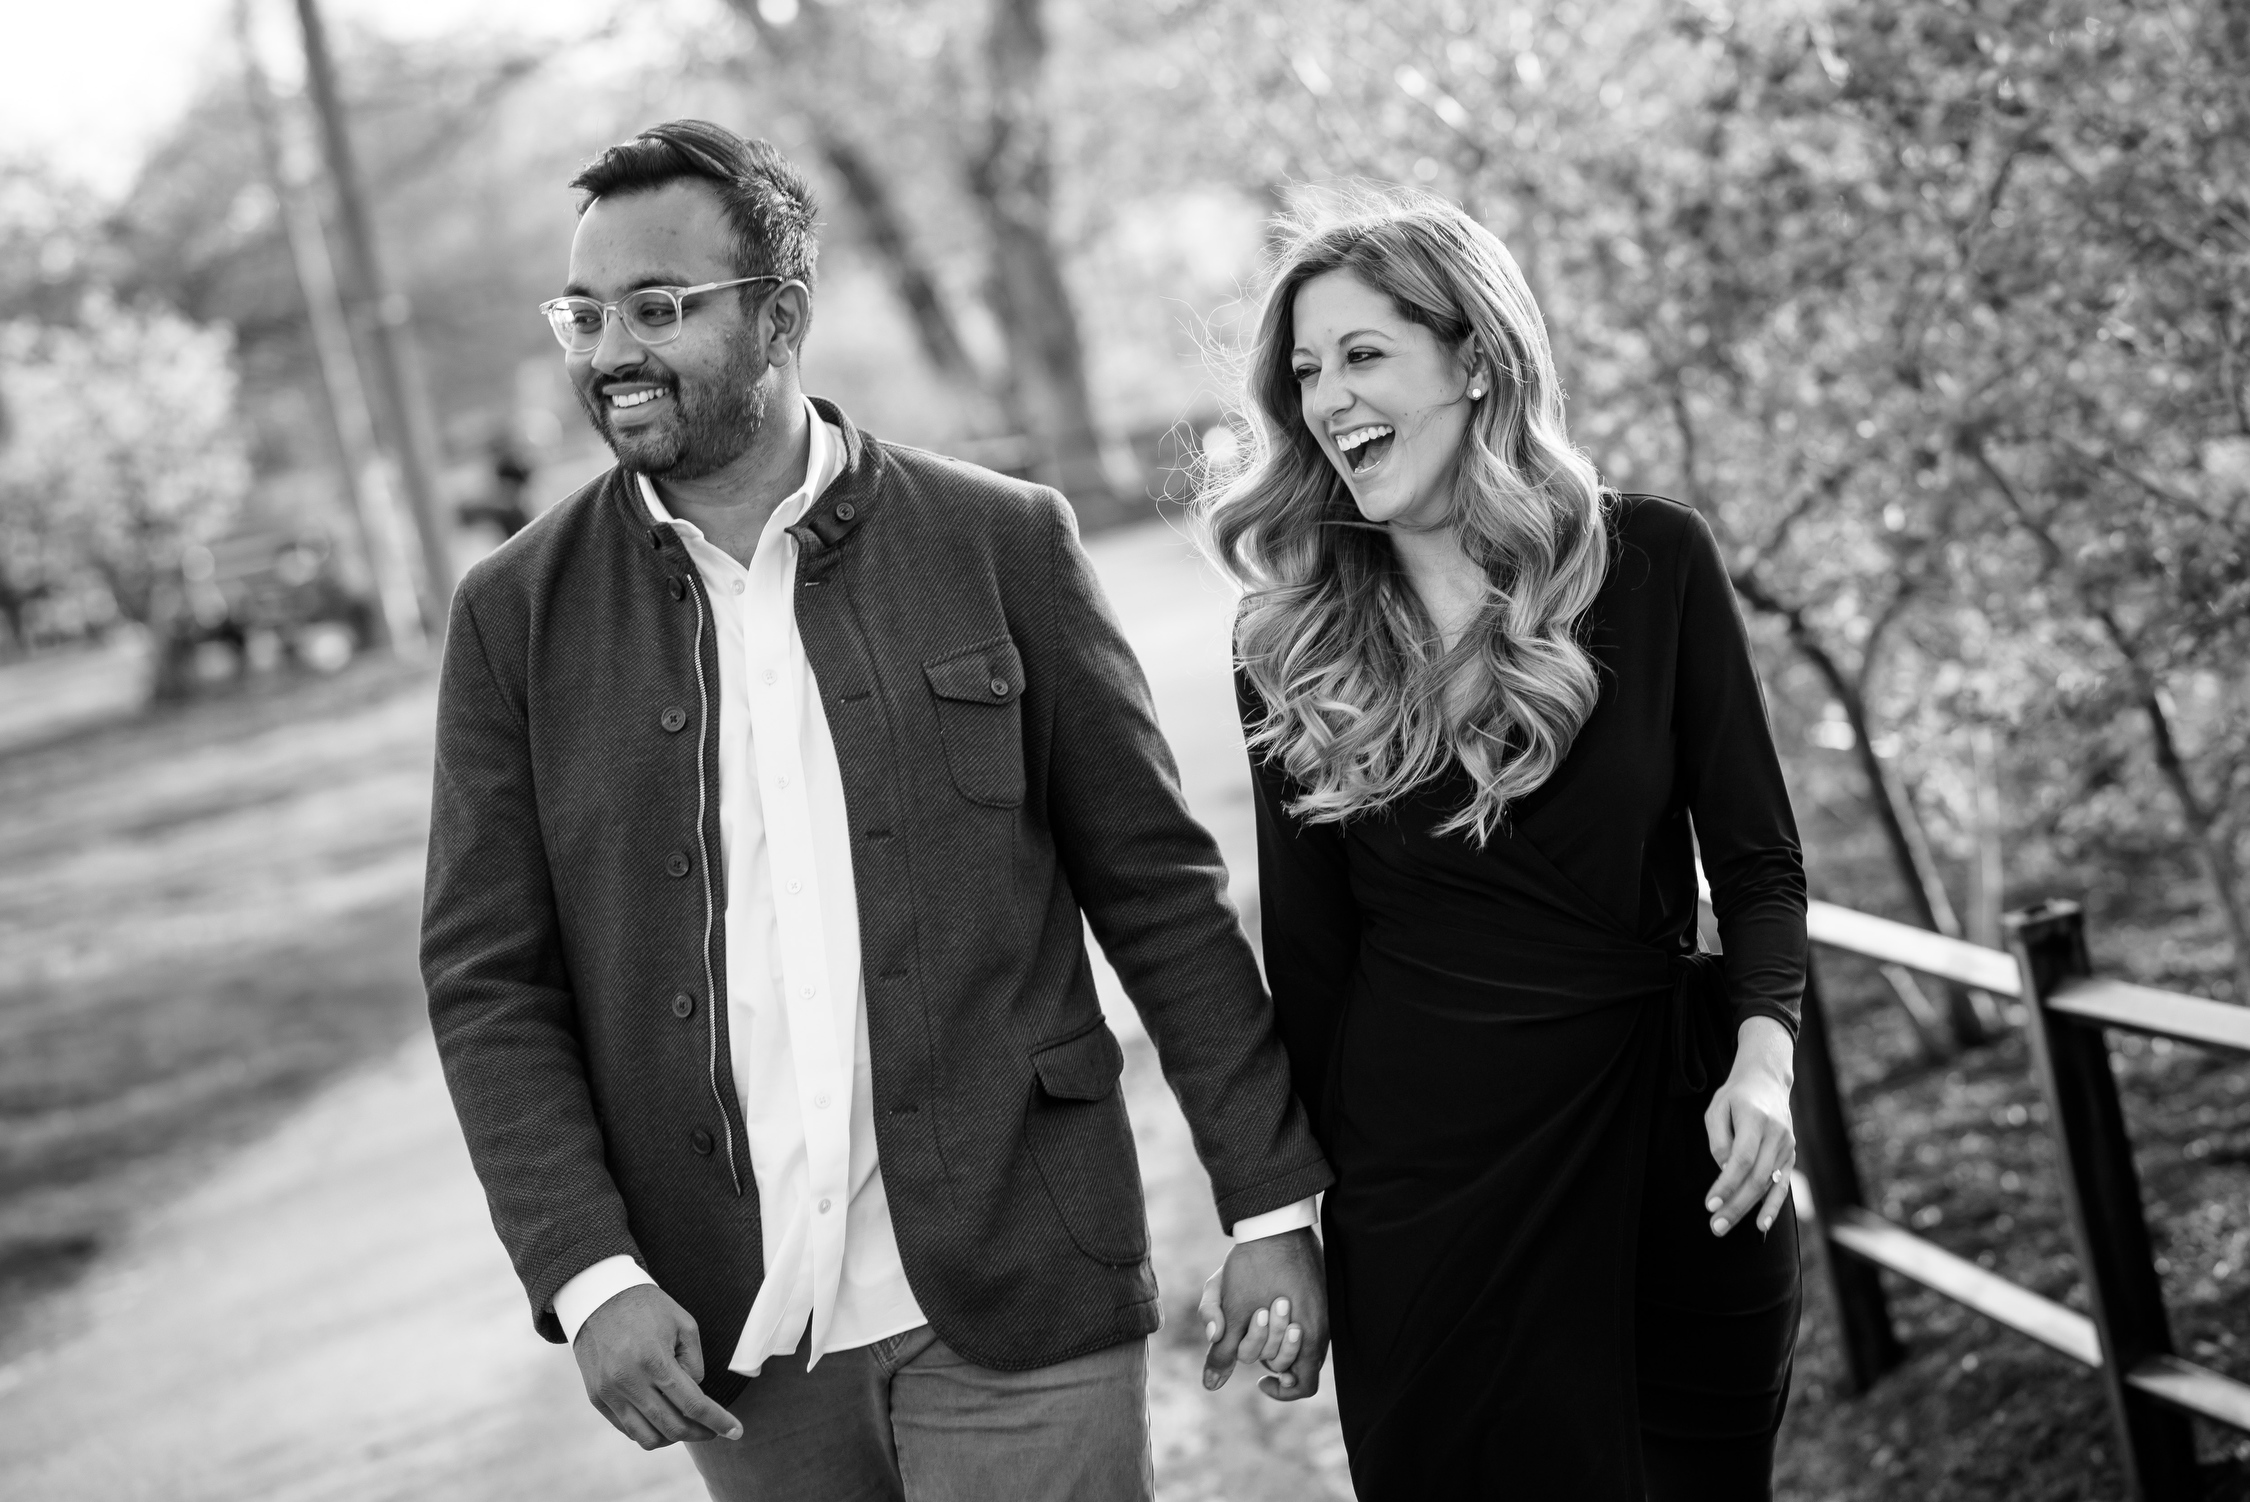 Fun candid moment during a Humboldt Park Chicago engagement session.